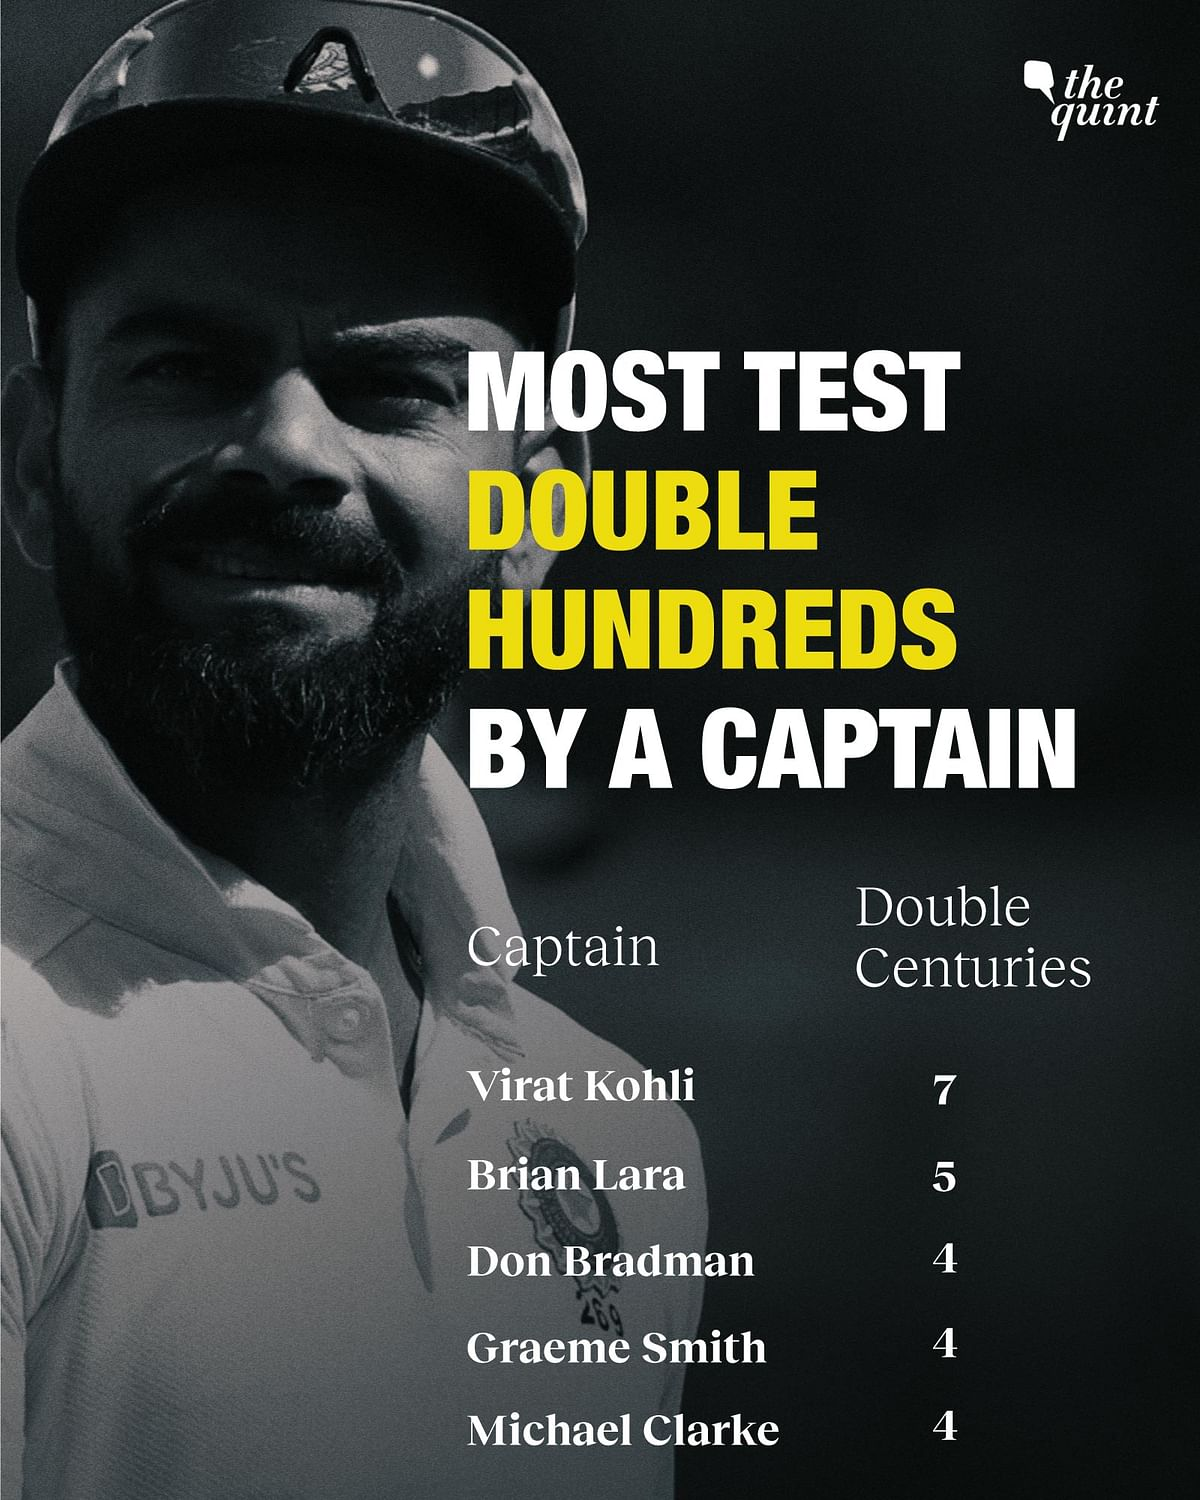 Virat's Biggest Test Records, On 10th Anniversary of Test Debut